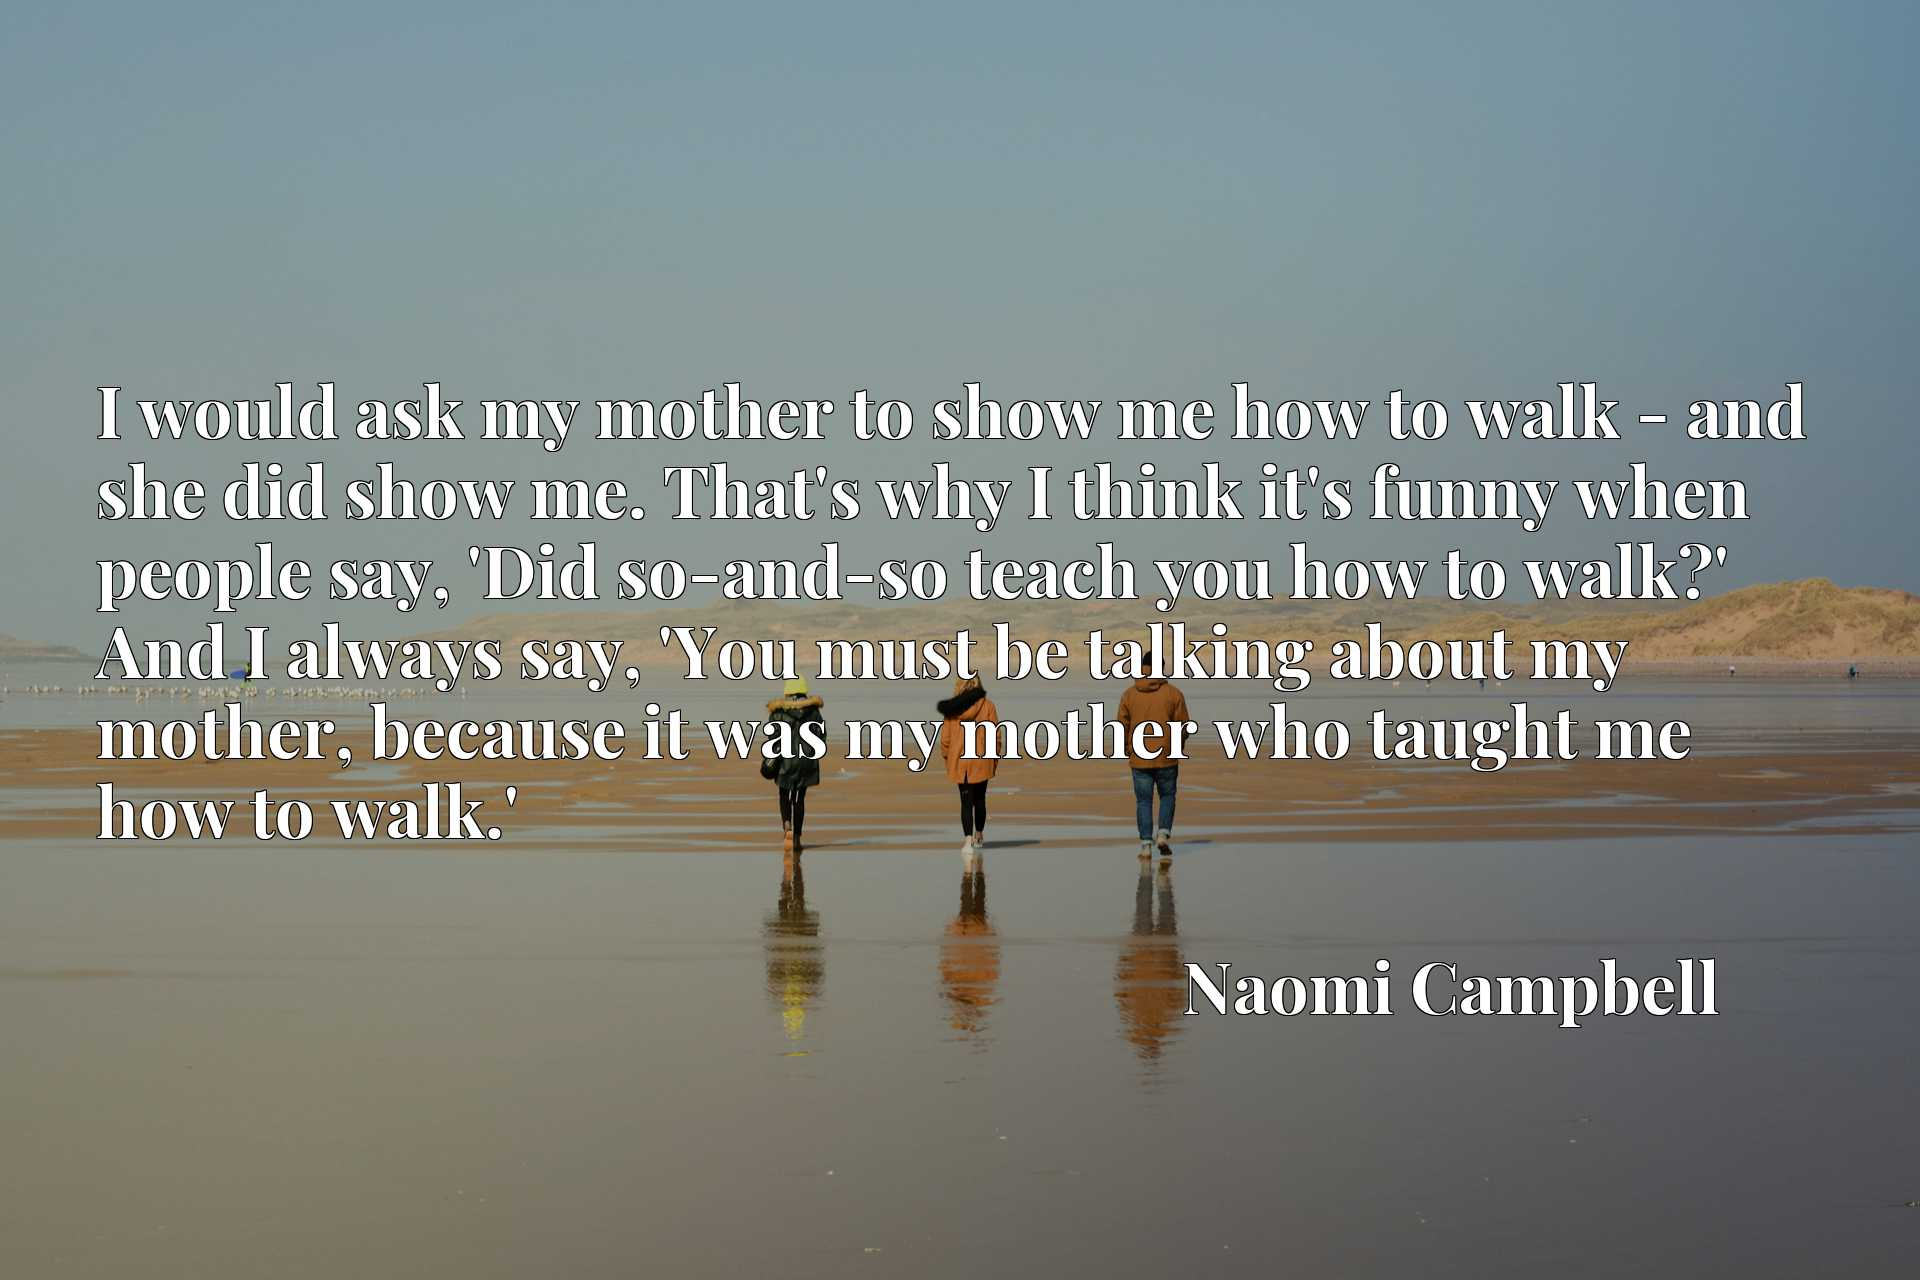 I would ask my mother to show me how to walk - and she did show me. That's why I think it's funny when people say, 'Did so-and-so teach you how to walk?' And I always say, 'You must be talking about my mother, because it was my mother who taught me how to walk.'